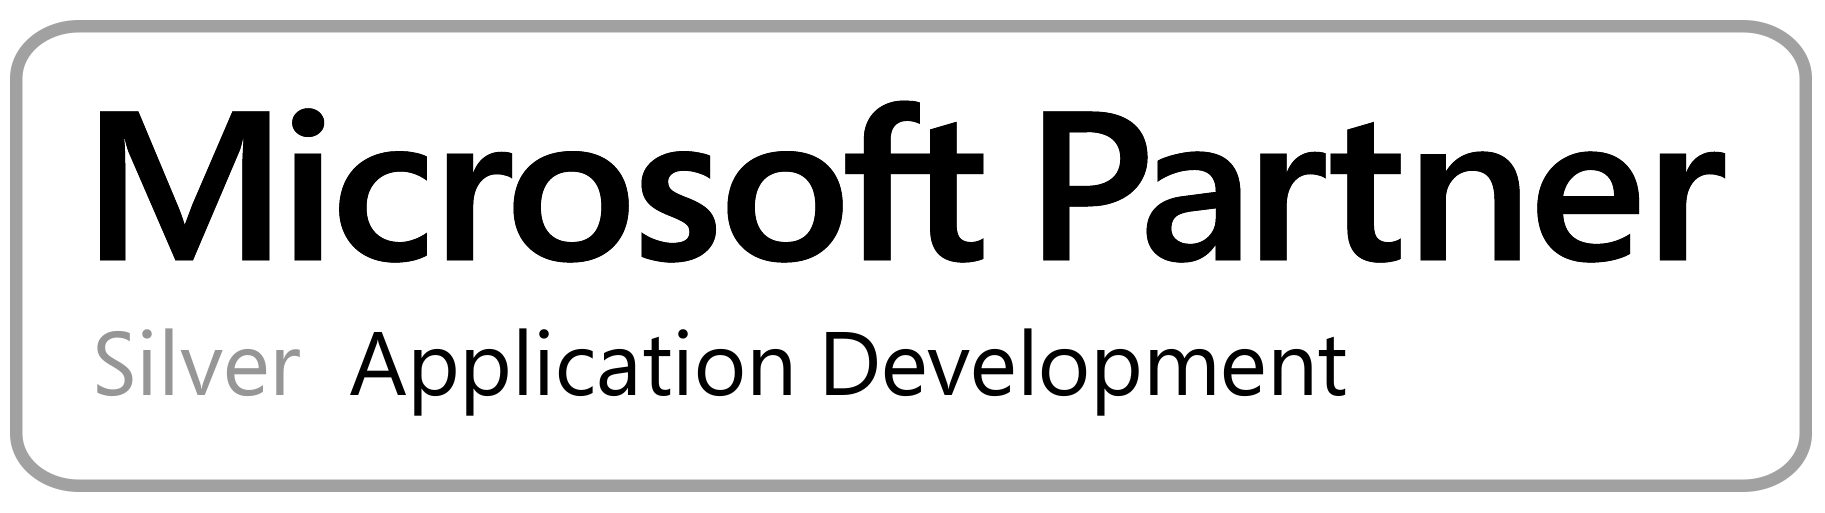 Microsoft Partner Netword